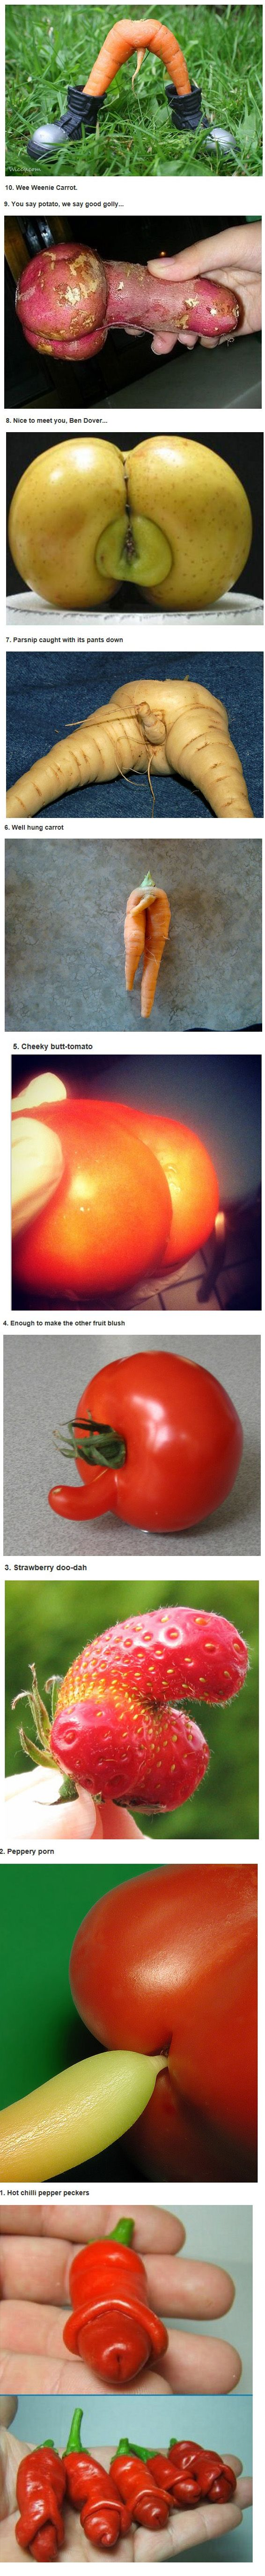 10-of-the-Naughtiest-Vegetables-on-Earth - Seriously, For Real?